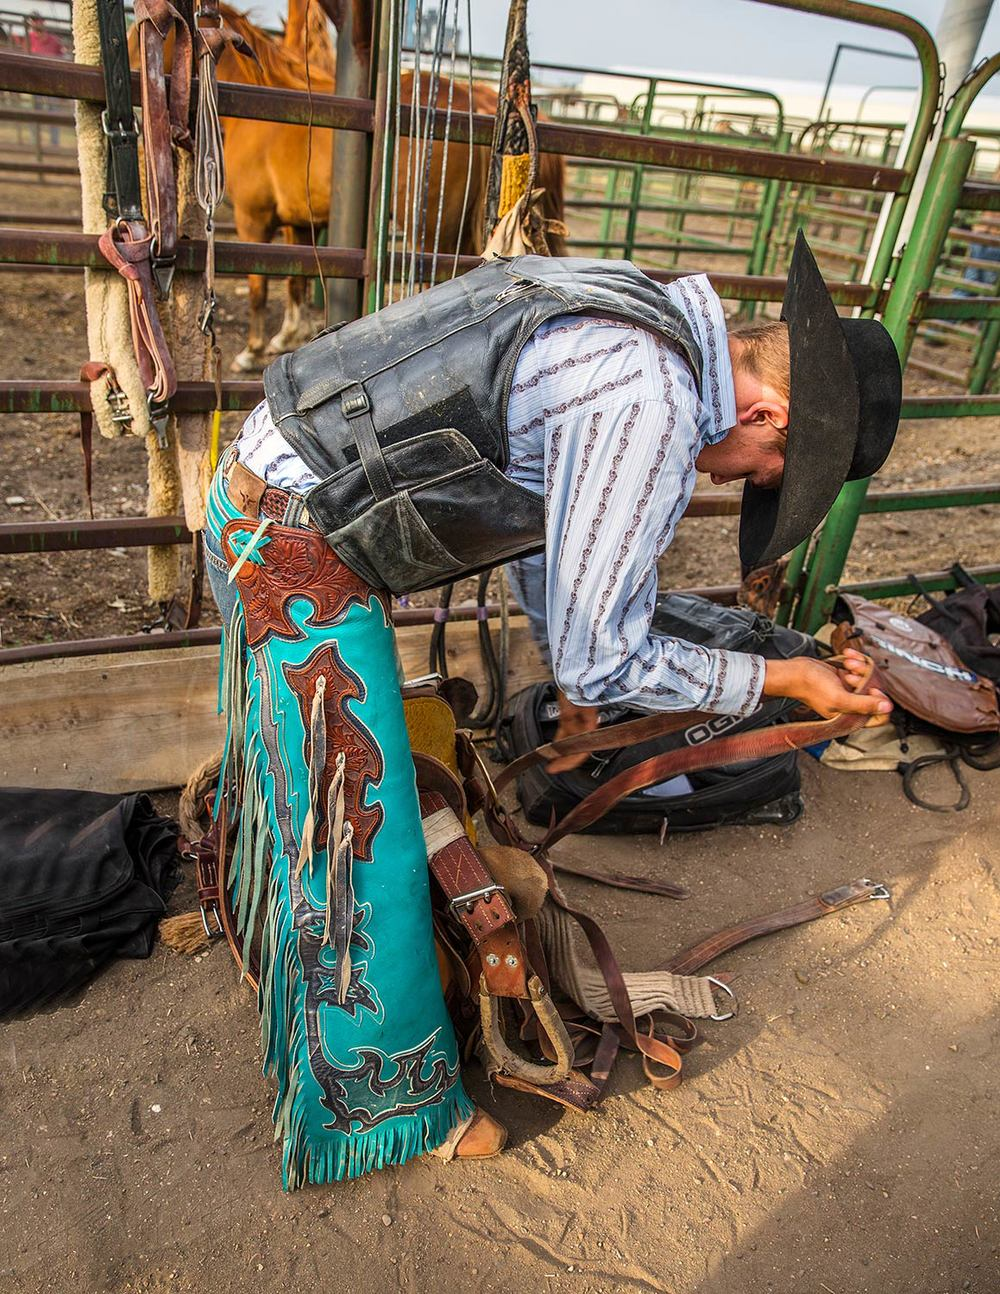 Readying the Saddle